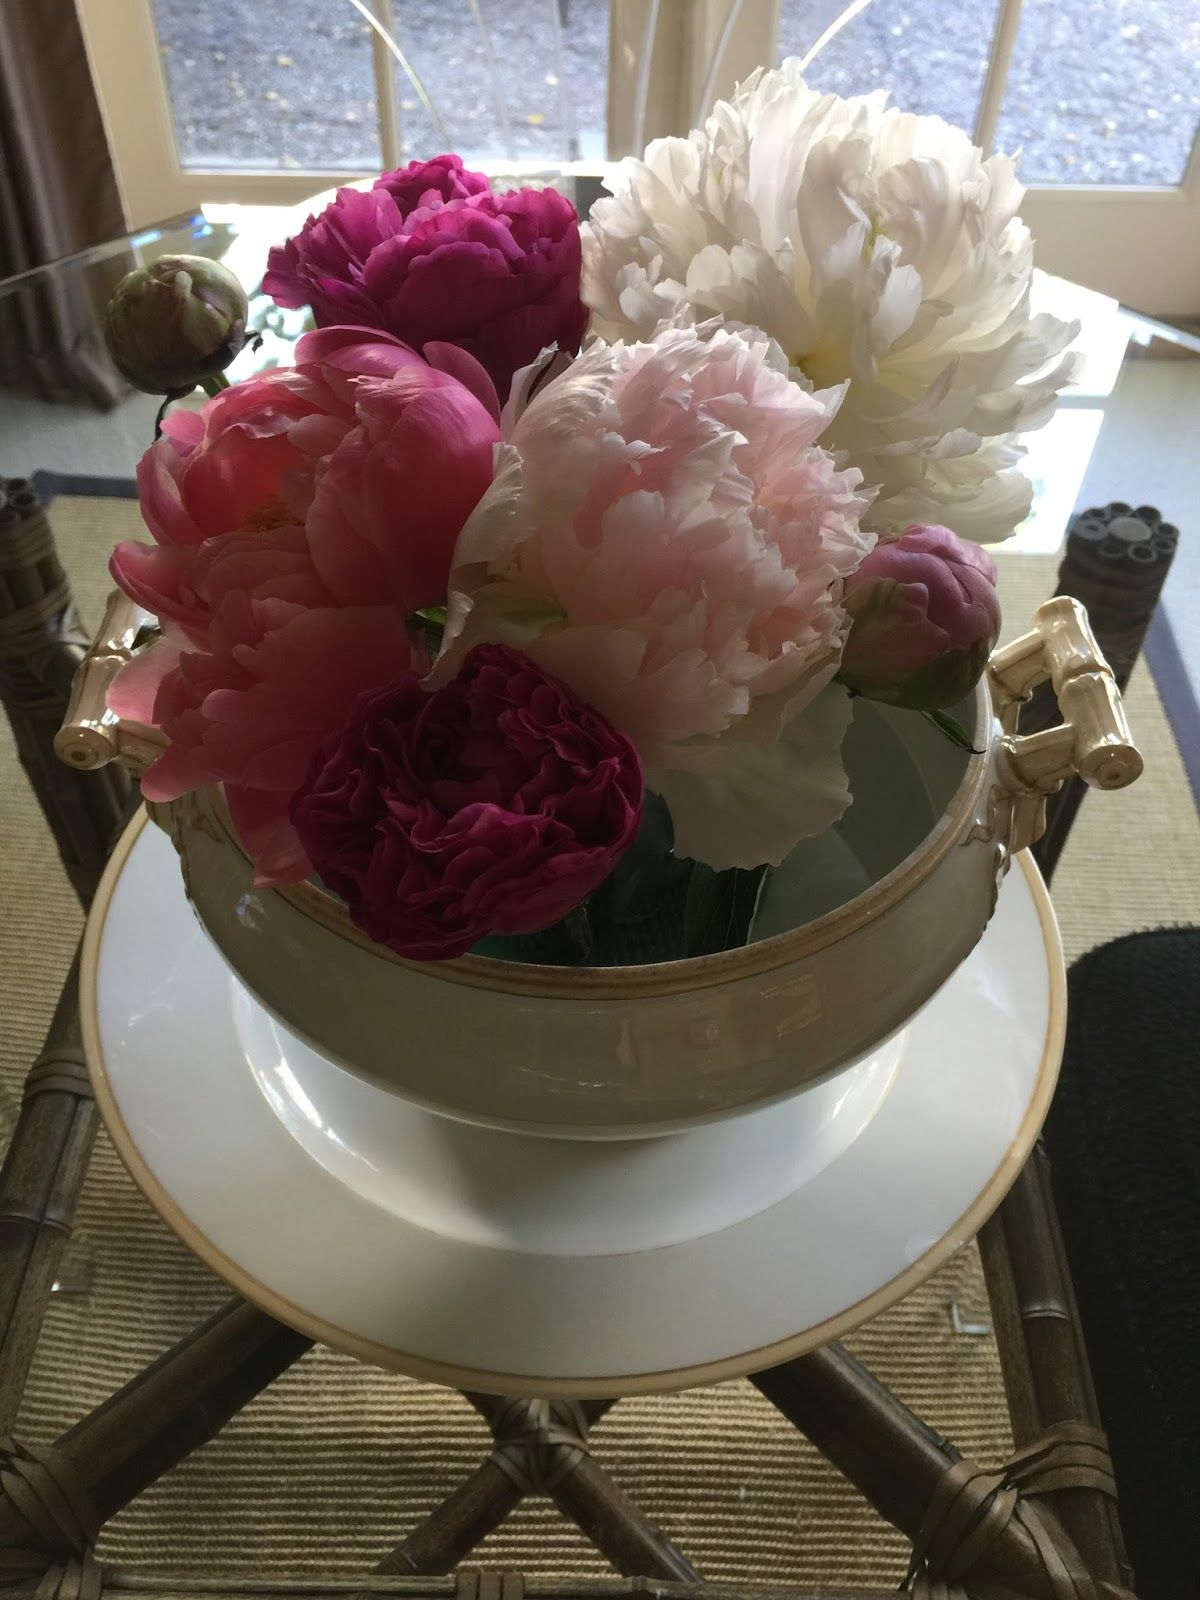 FINALLY, it is Peony Season here in the Bay Area thanks to Trader ...